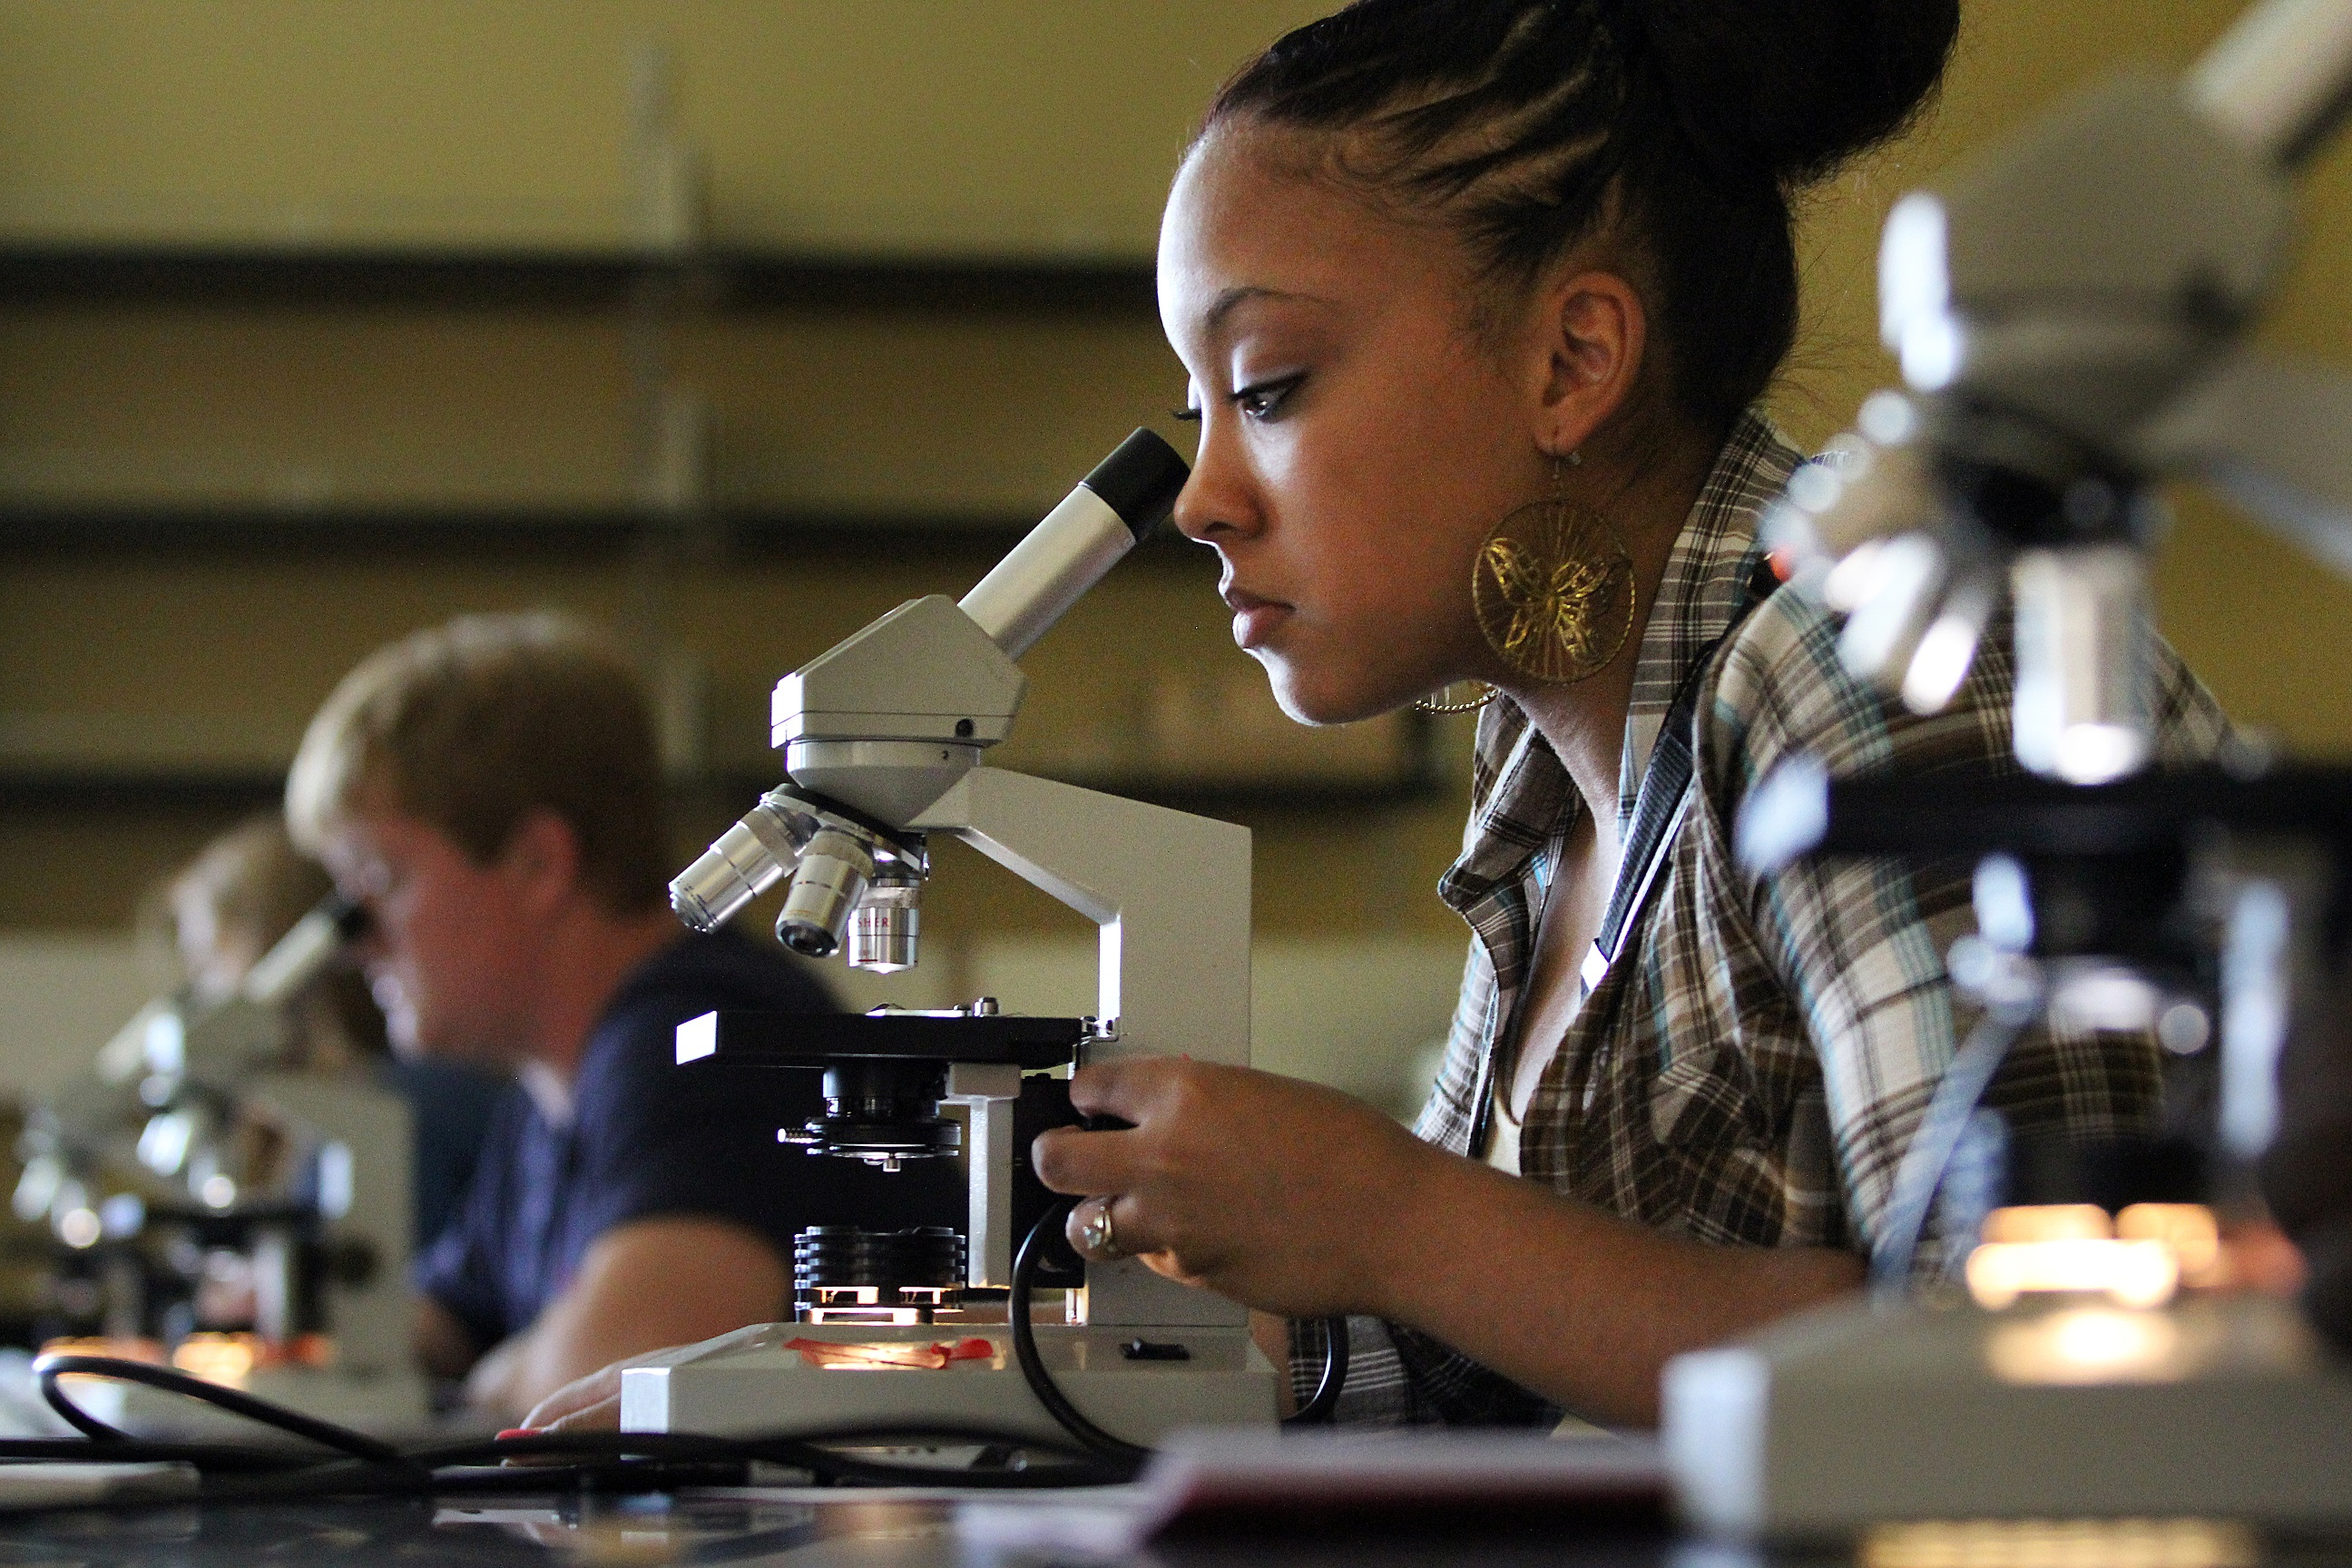 Students using microscopes in a lab setting